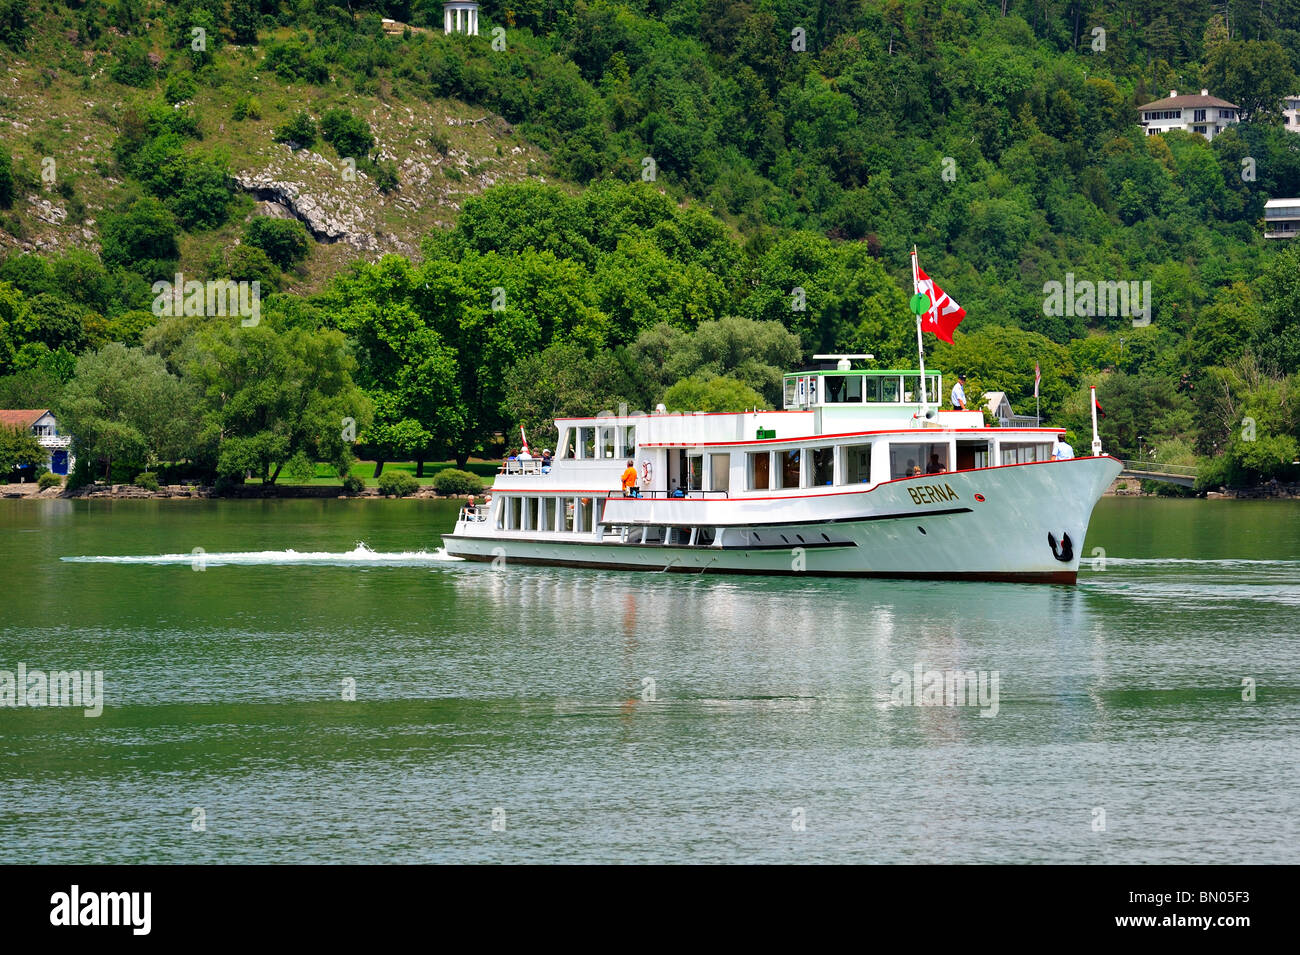 The Swiss lake cruiser Berna leaving the port at Biel (Bienne) on the Lac de Biel (Bielersee)  - Stock Image